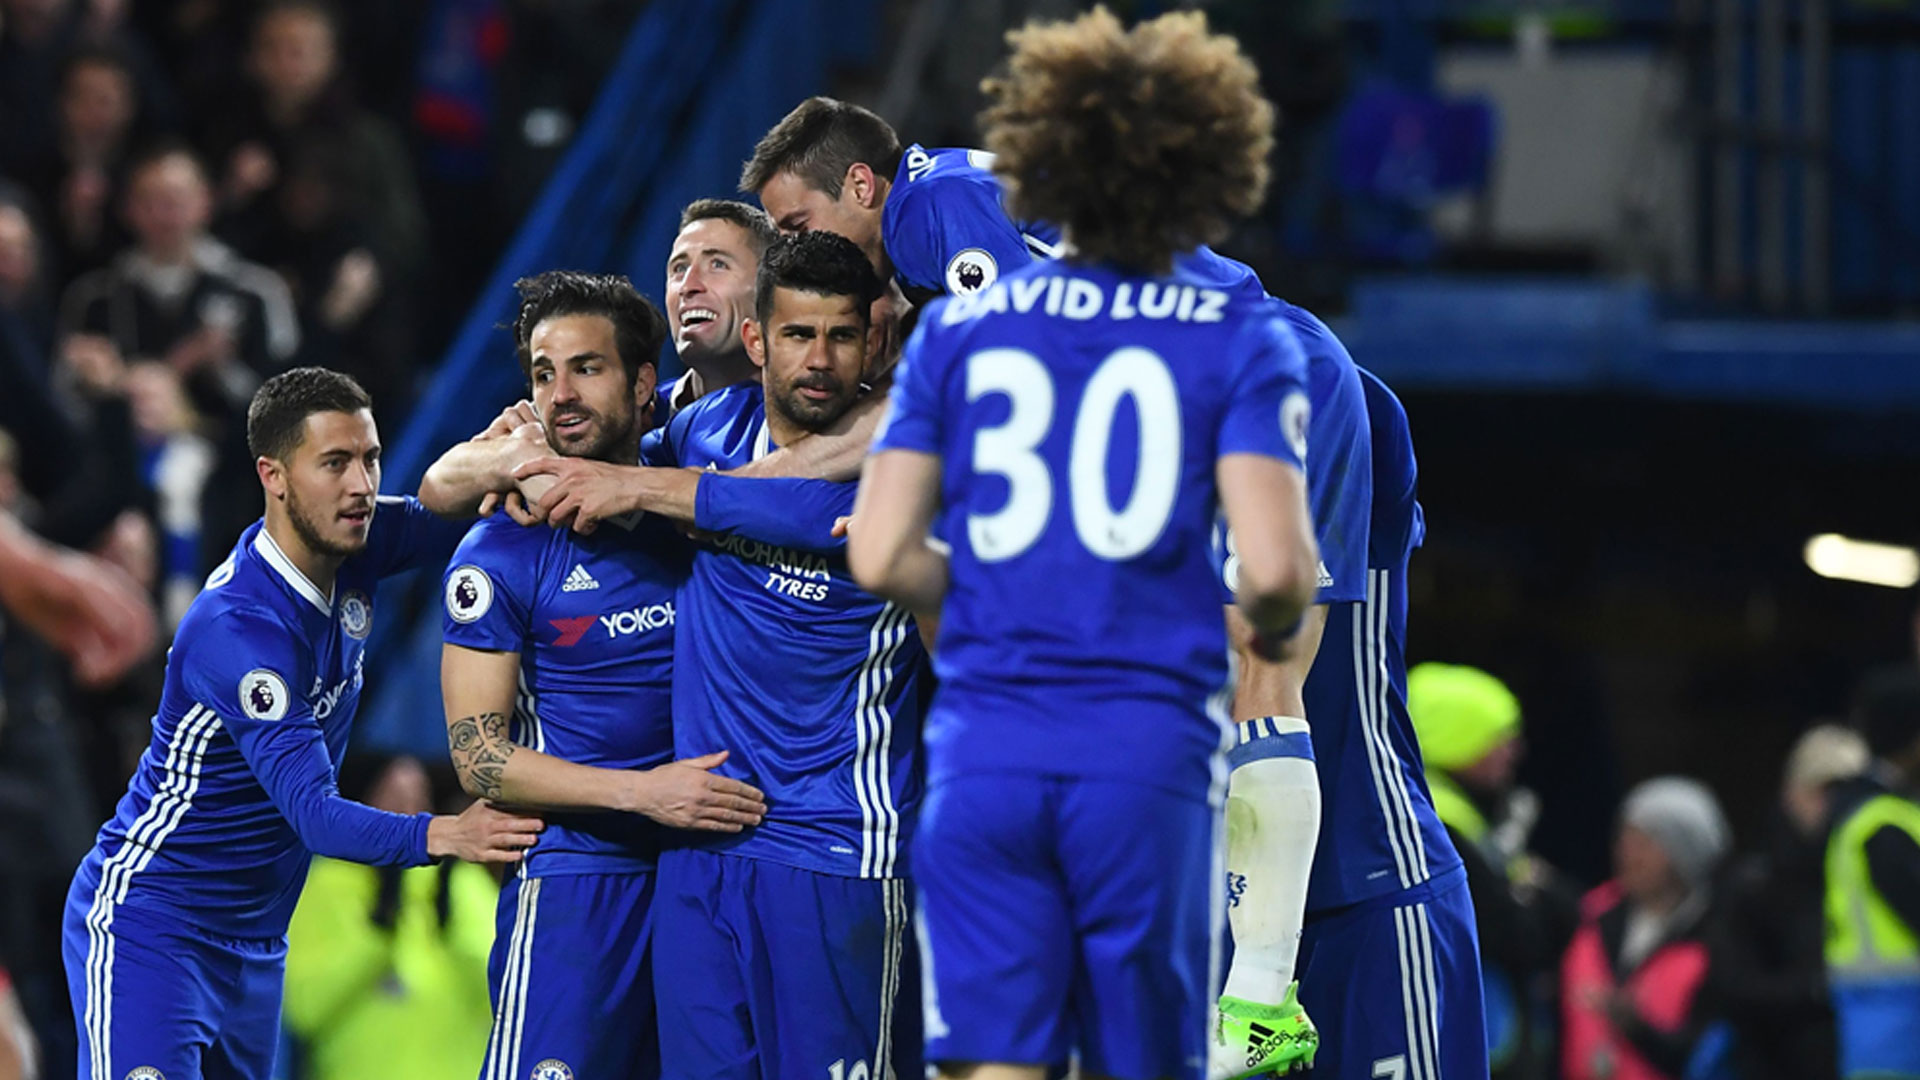 Chelsea F.C. calm nerves and extend lead with win over Southampton